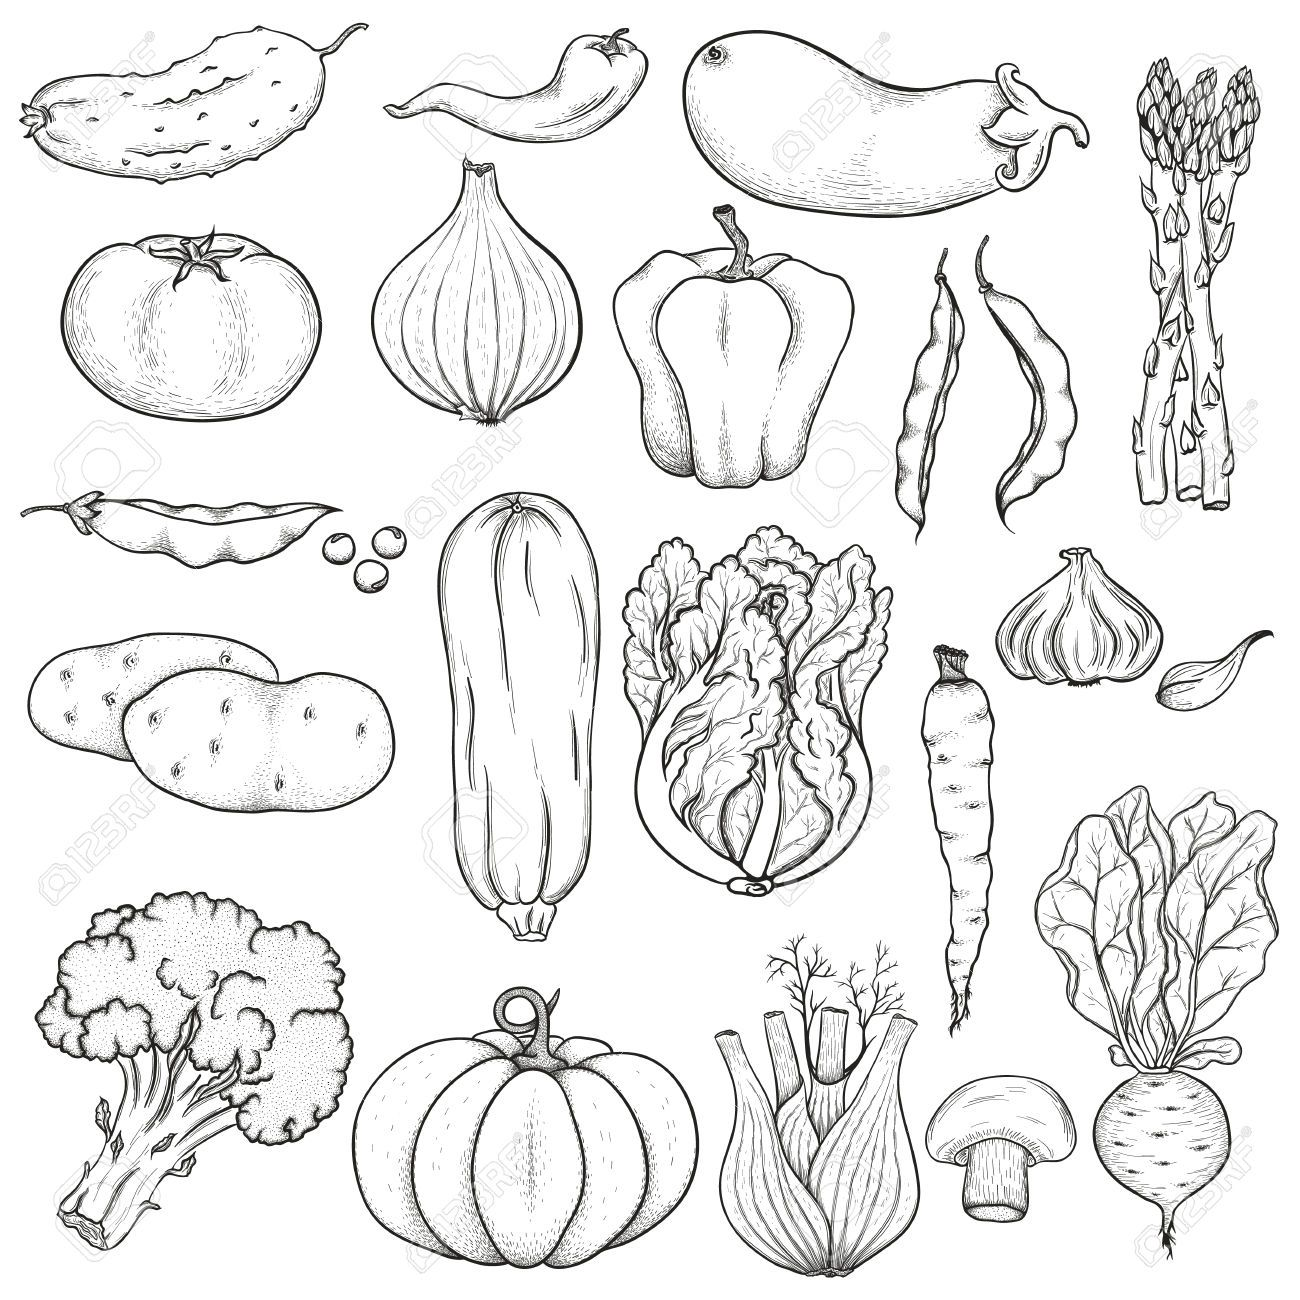 Eating fruits and vegetables clipart black and white clip clipart vegetables black and white - Google Search | MFM | Vegetable ... clip